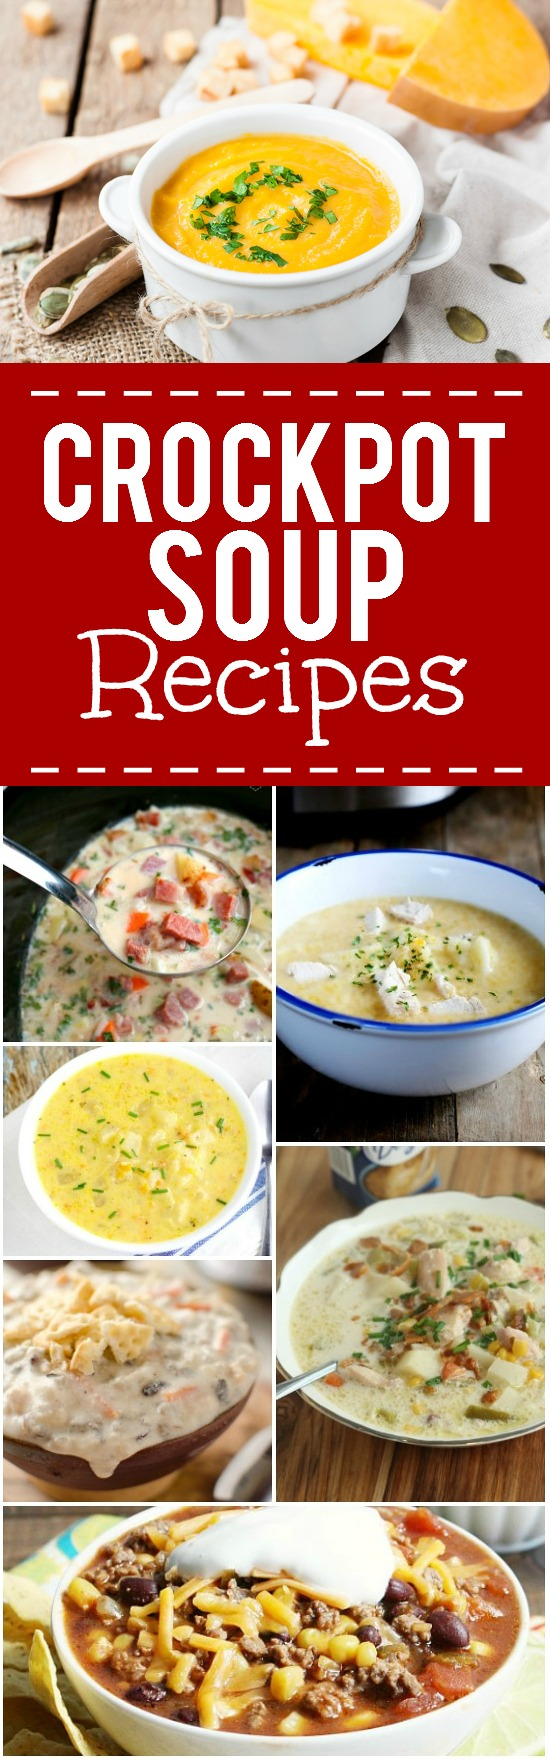 44 Crock Pot Soup Recipes -Find 44 of the BEST Crock Pot Soup recipes to cook and snuggle up with this cold season. From creamy, cheesy chowders to chunky, hearty stews, there's something for everyone!